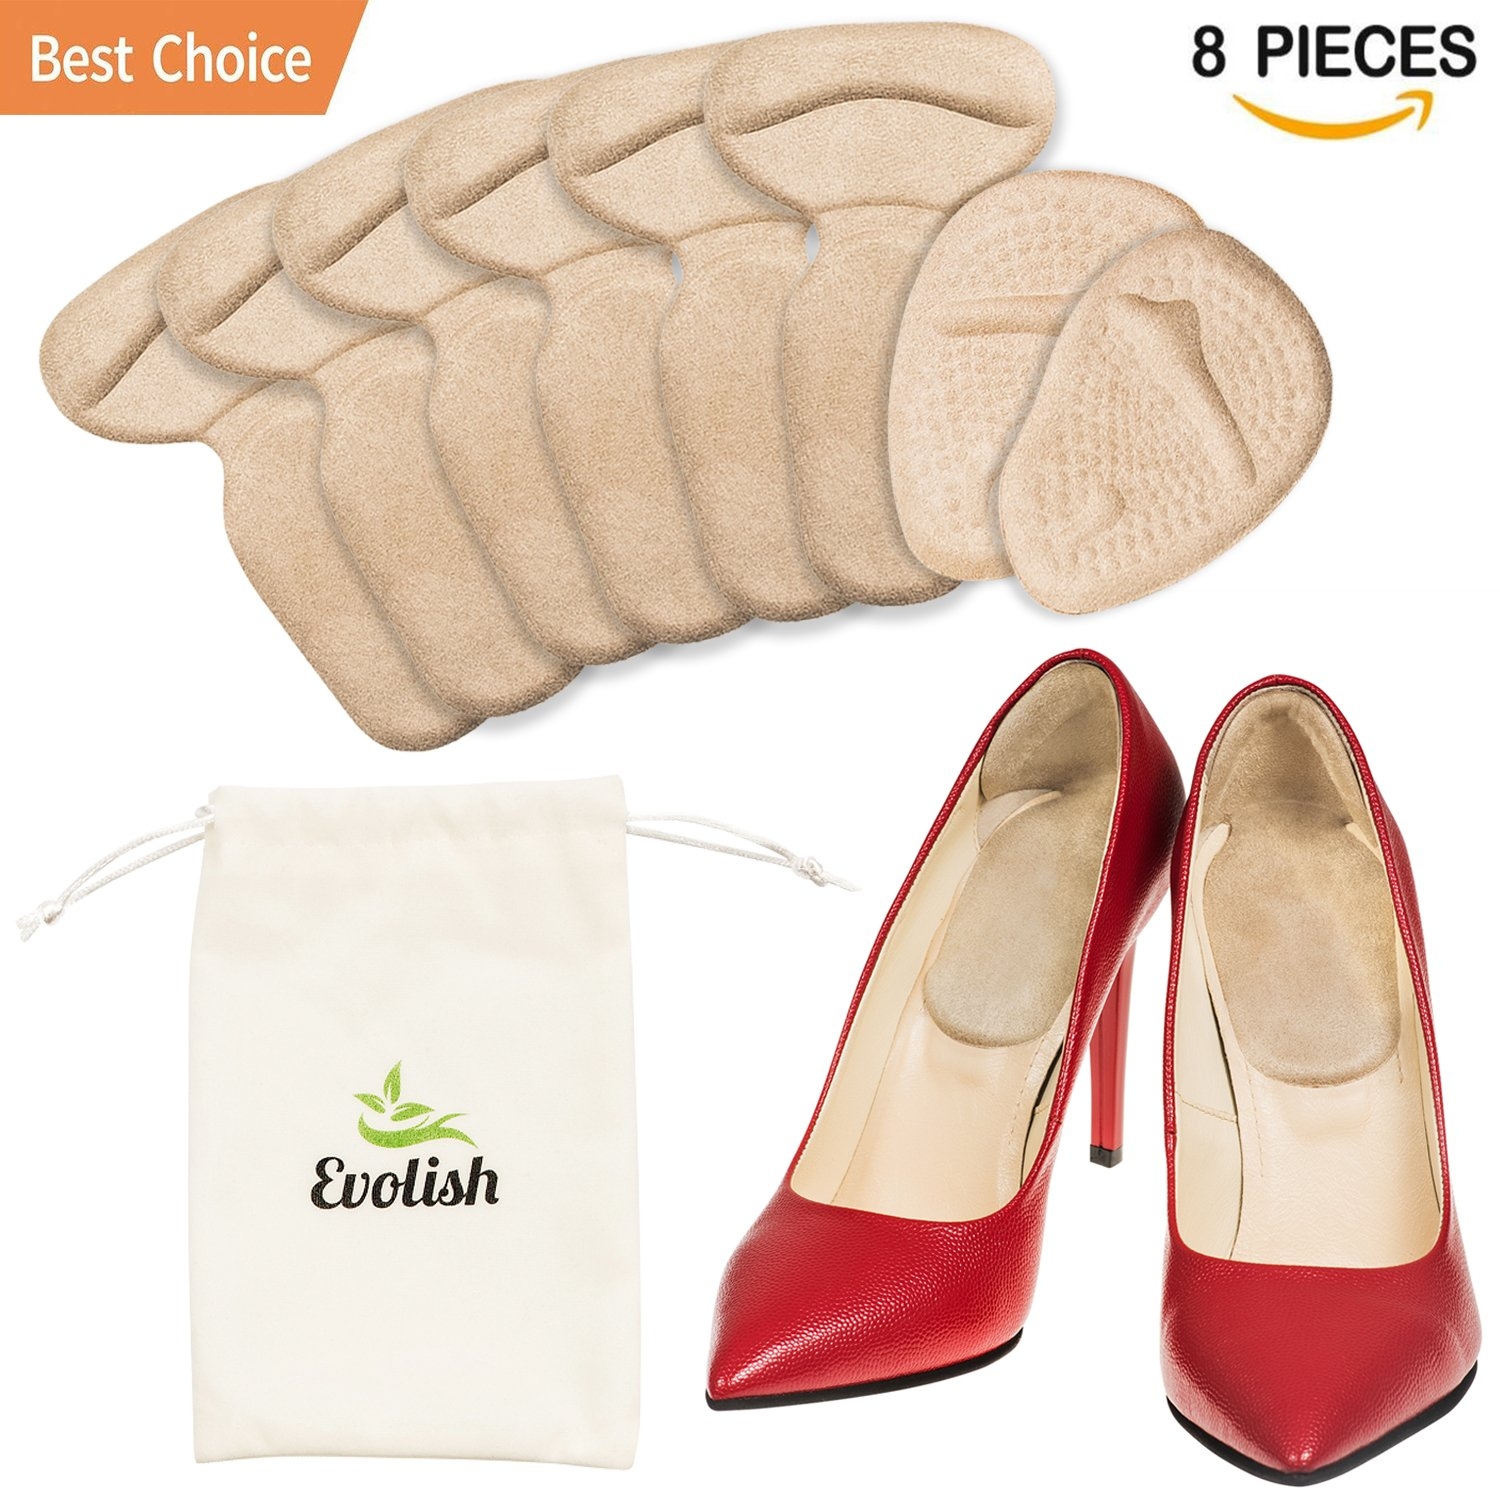 High Heel Pads (8 pcs) | High Heel Grips | High Heel Cushion Inserts for Women | | Shoe Heel Liners Non Slip Shoe Filler for Too Big Shoes Heel Insoles for Blisters Pain Relief by Evolish (Beige)